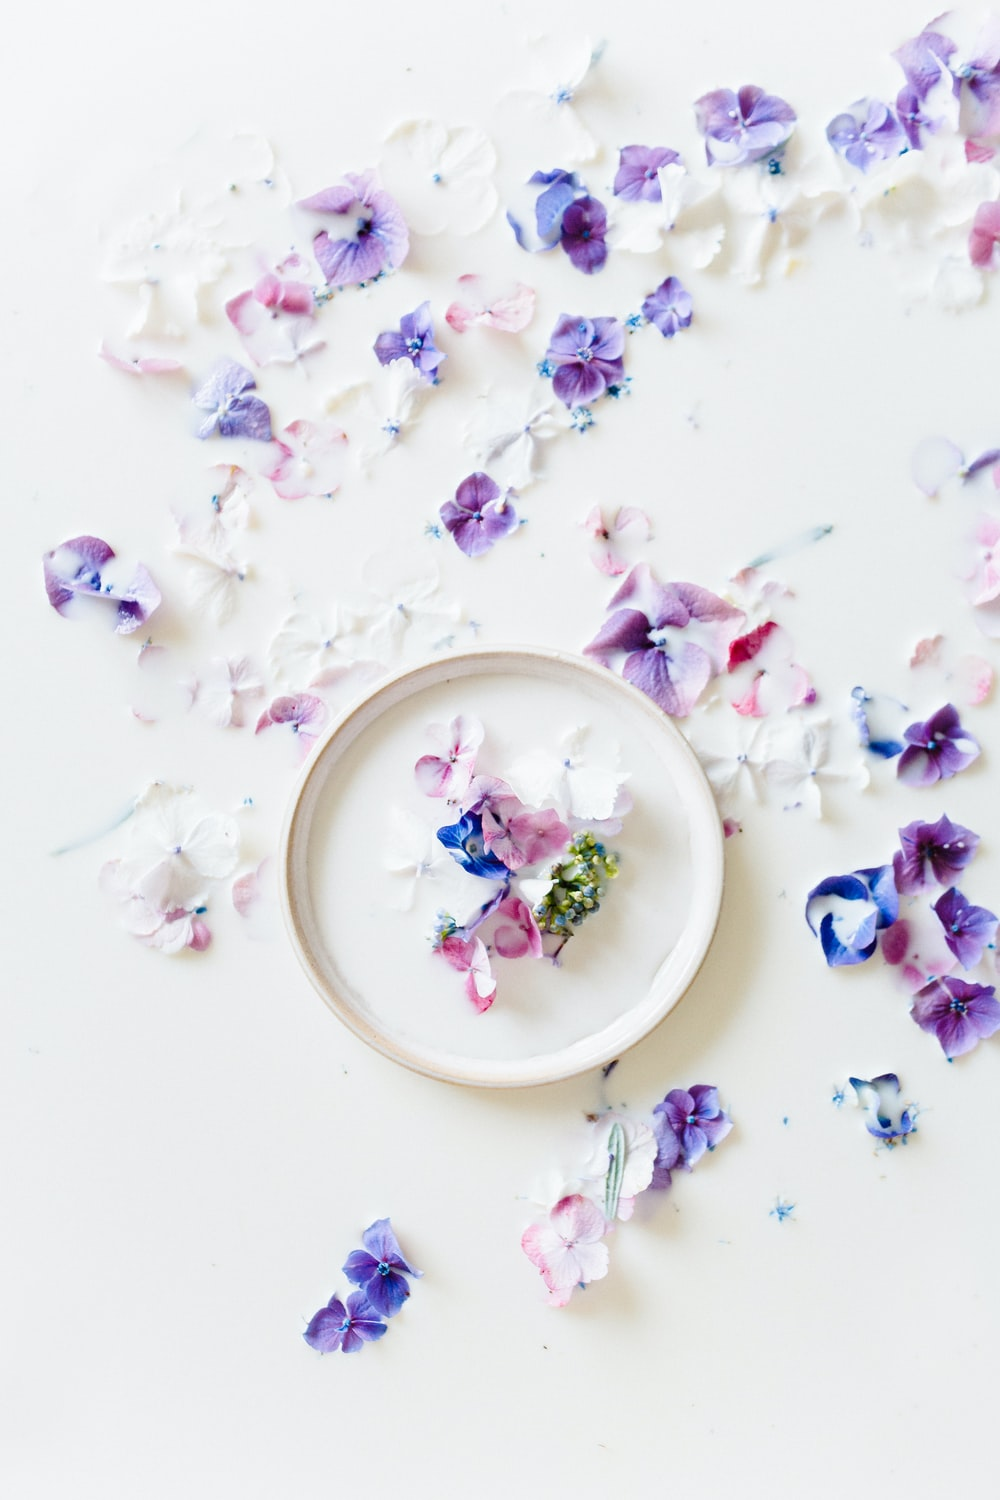 white and purple floral ceramic plate